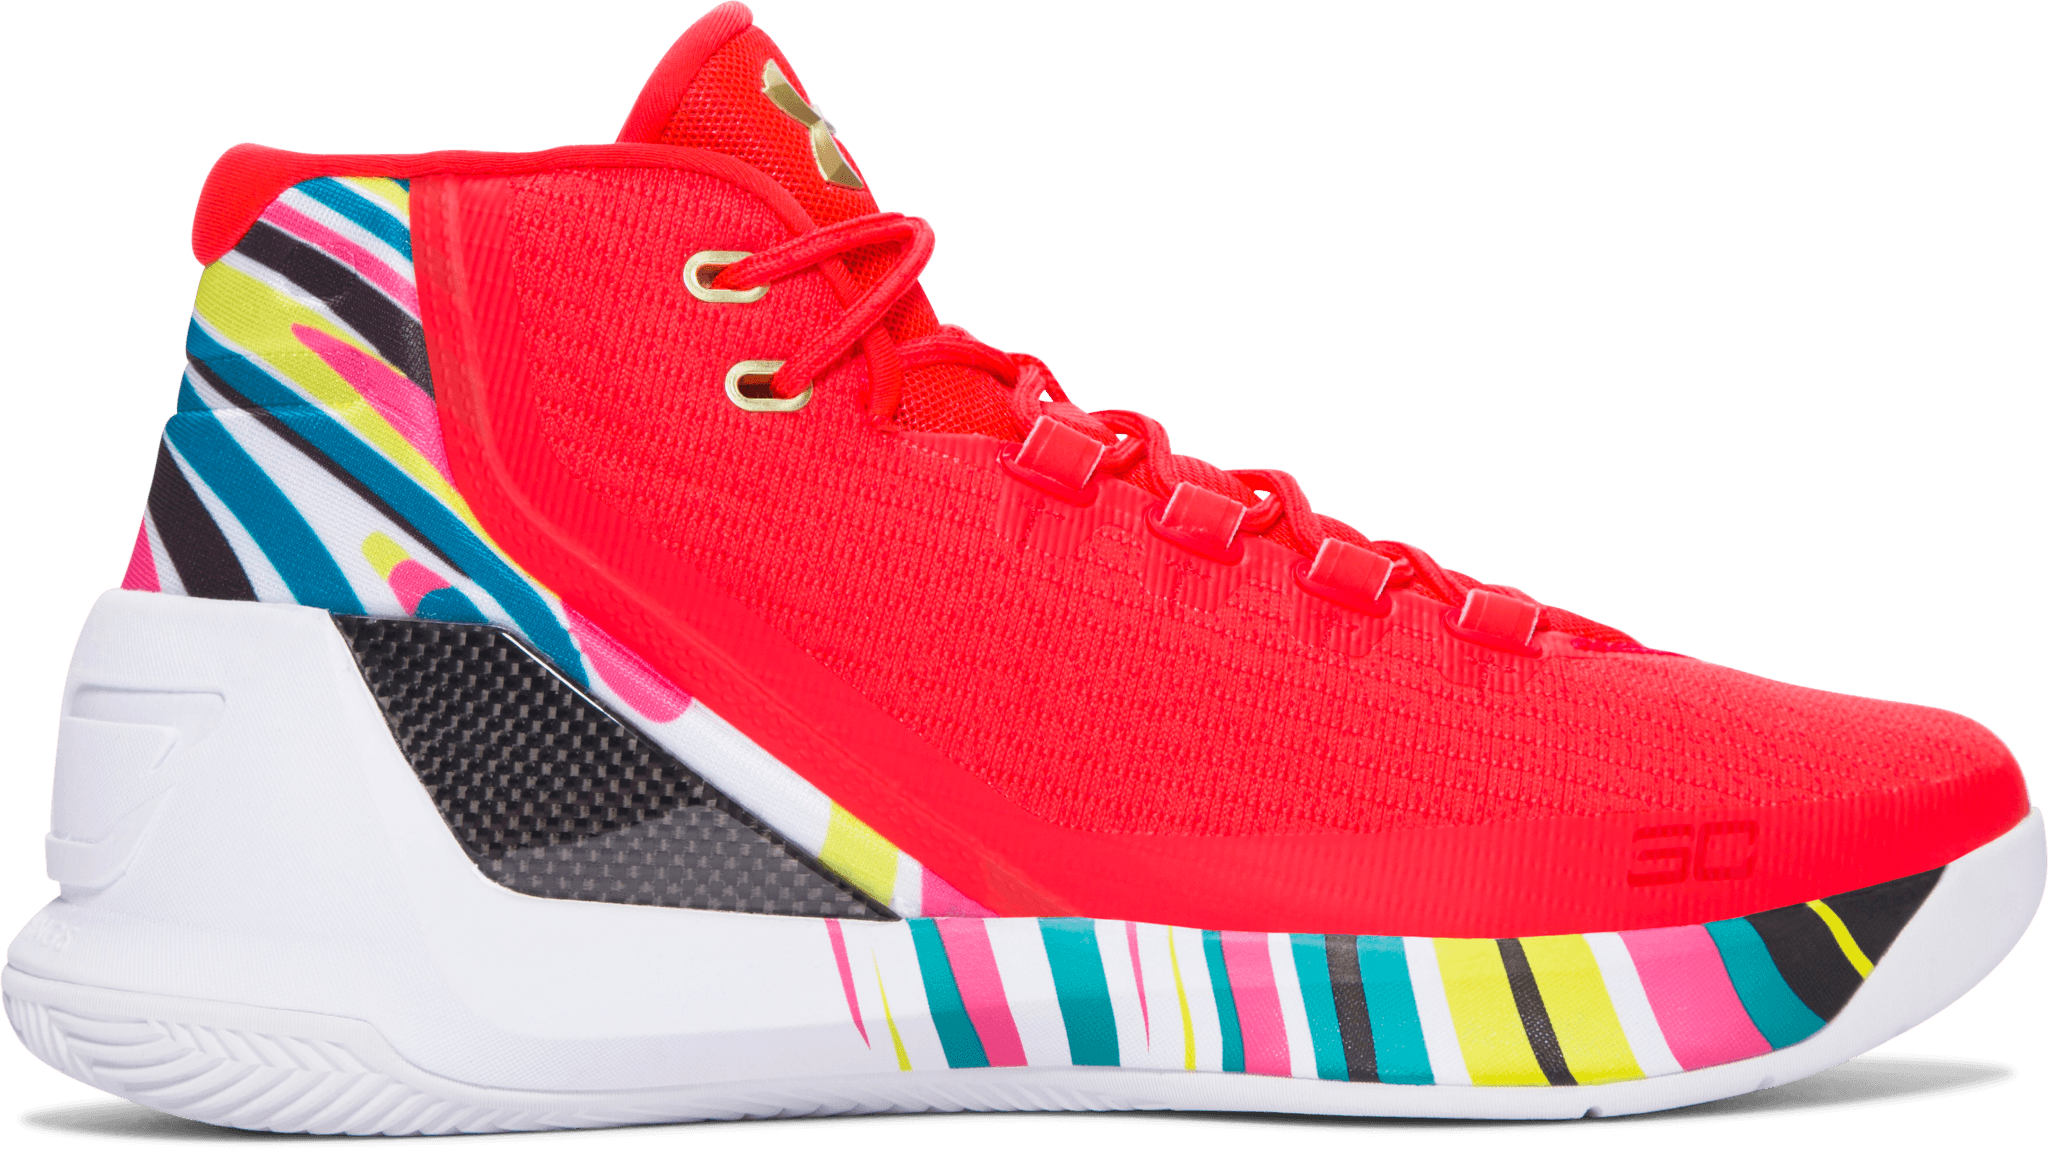 Under Armour Curry 3 Performance Review